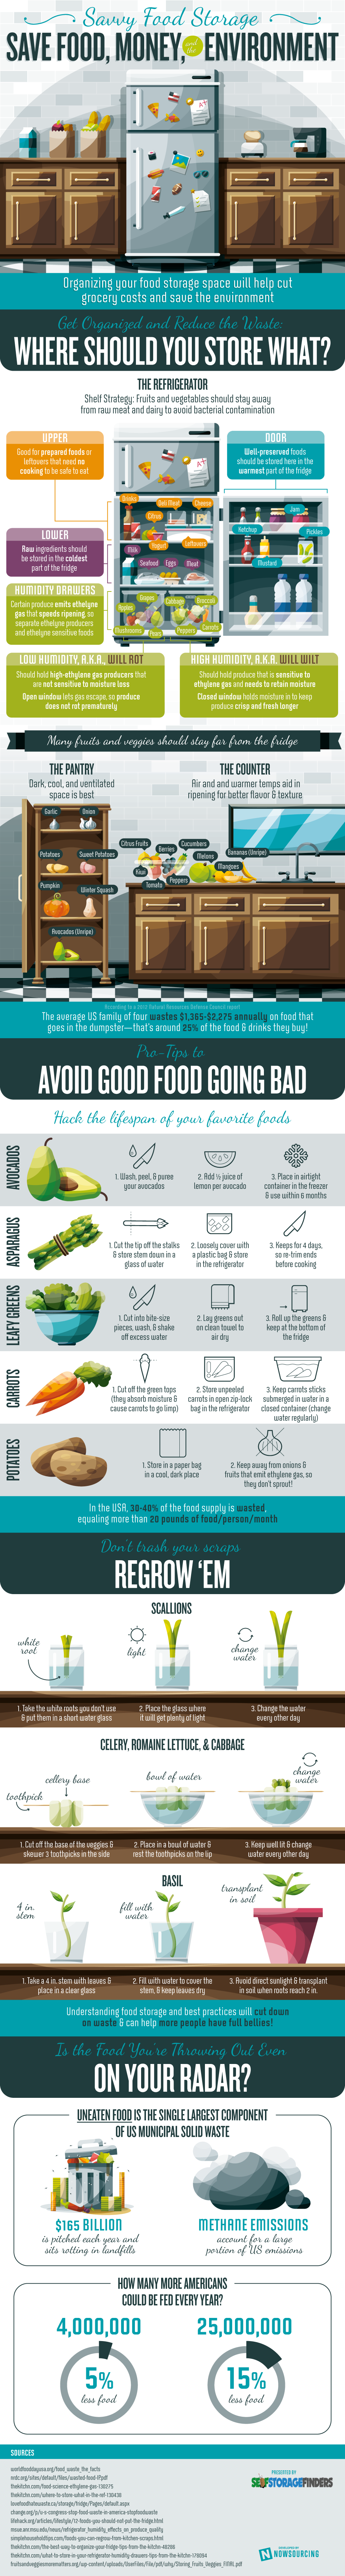 Savvy Food Storage Save Food Money And The Environment  sc 1 st  Infographic Journal & Savvy Food Storage: Save Food Money And The Environment [Infographic]